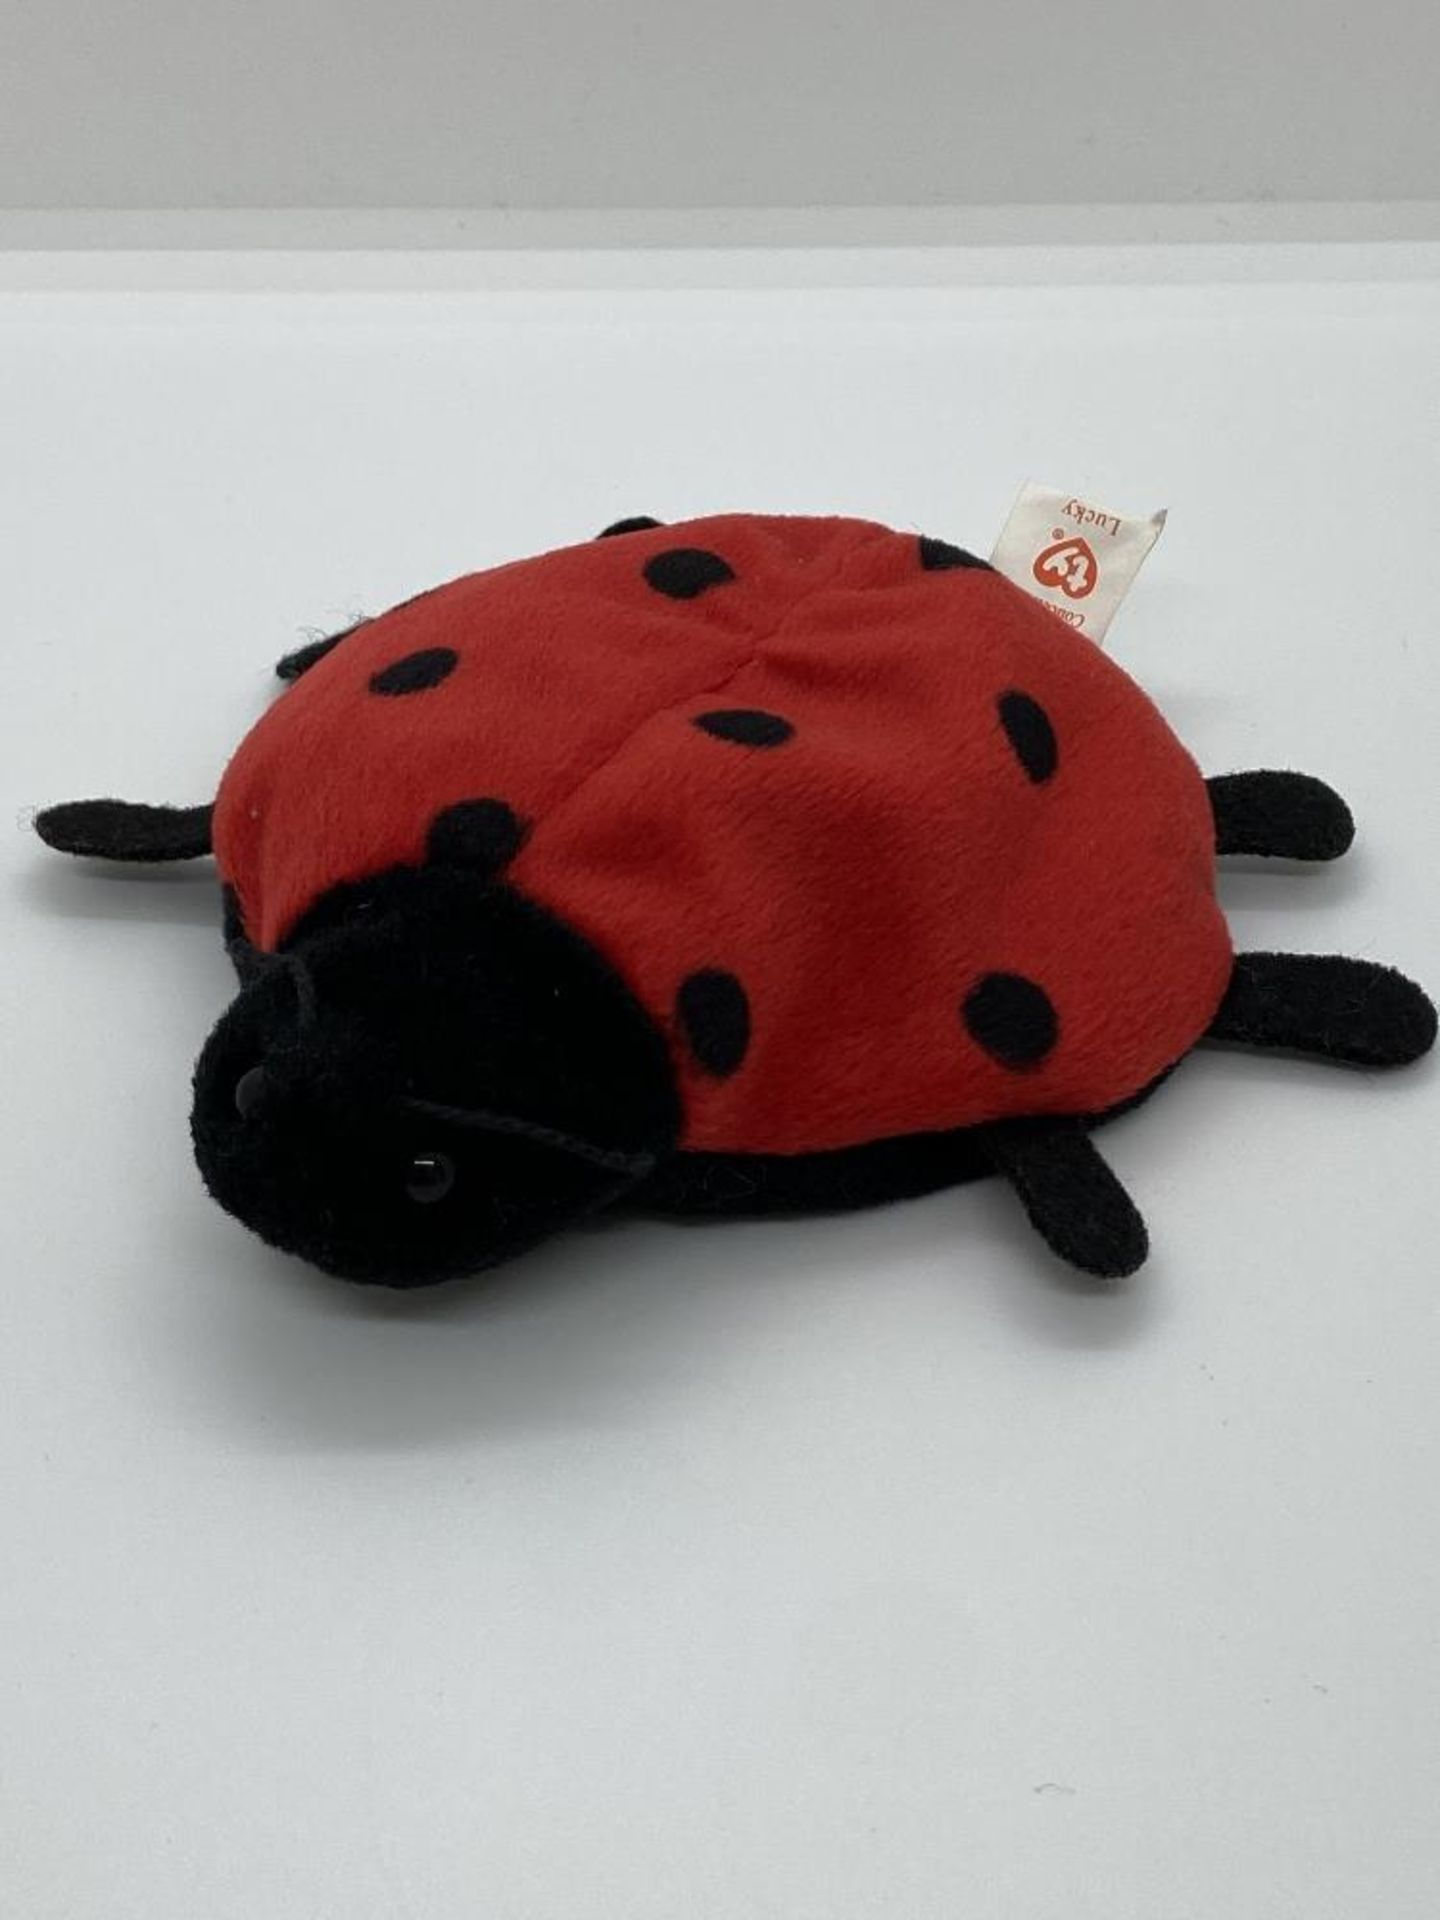 Ty Beanie Babies Lucky, The Ladybug, EARLY GEN 1993, PVC Pellets, w/o Hang Tag